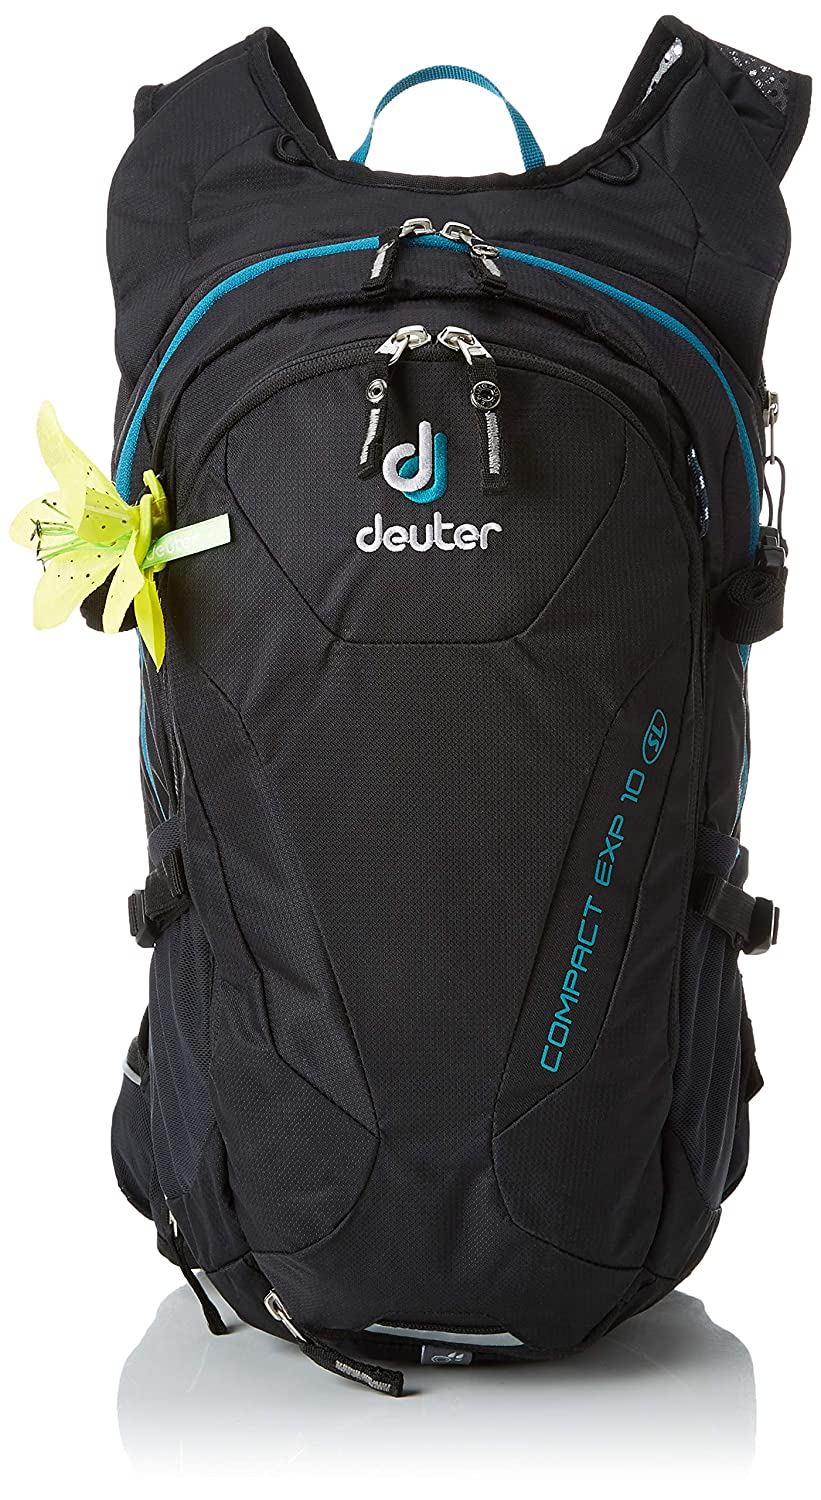 Deuter Compact EXP 10 SL Biking Backpack with Hydration System